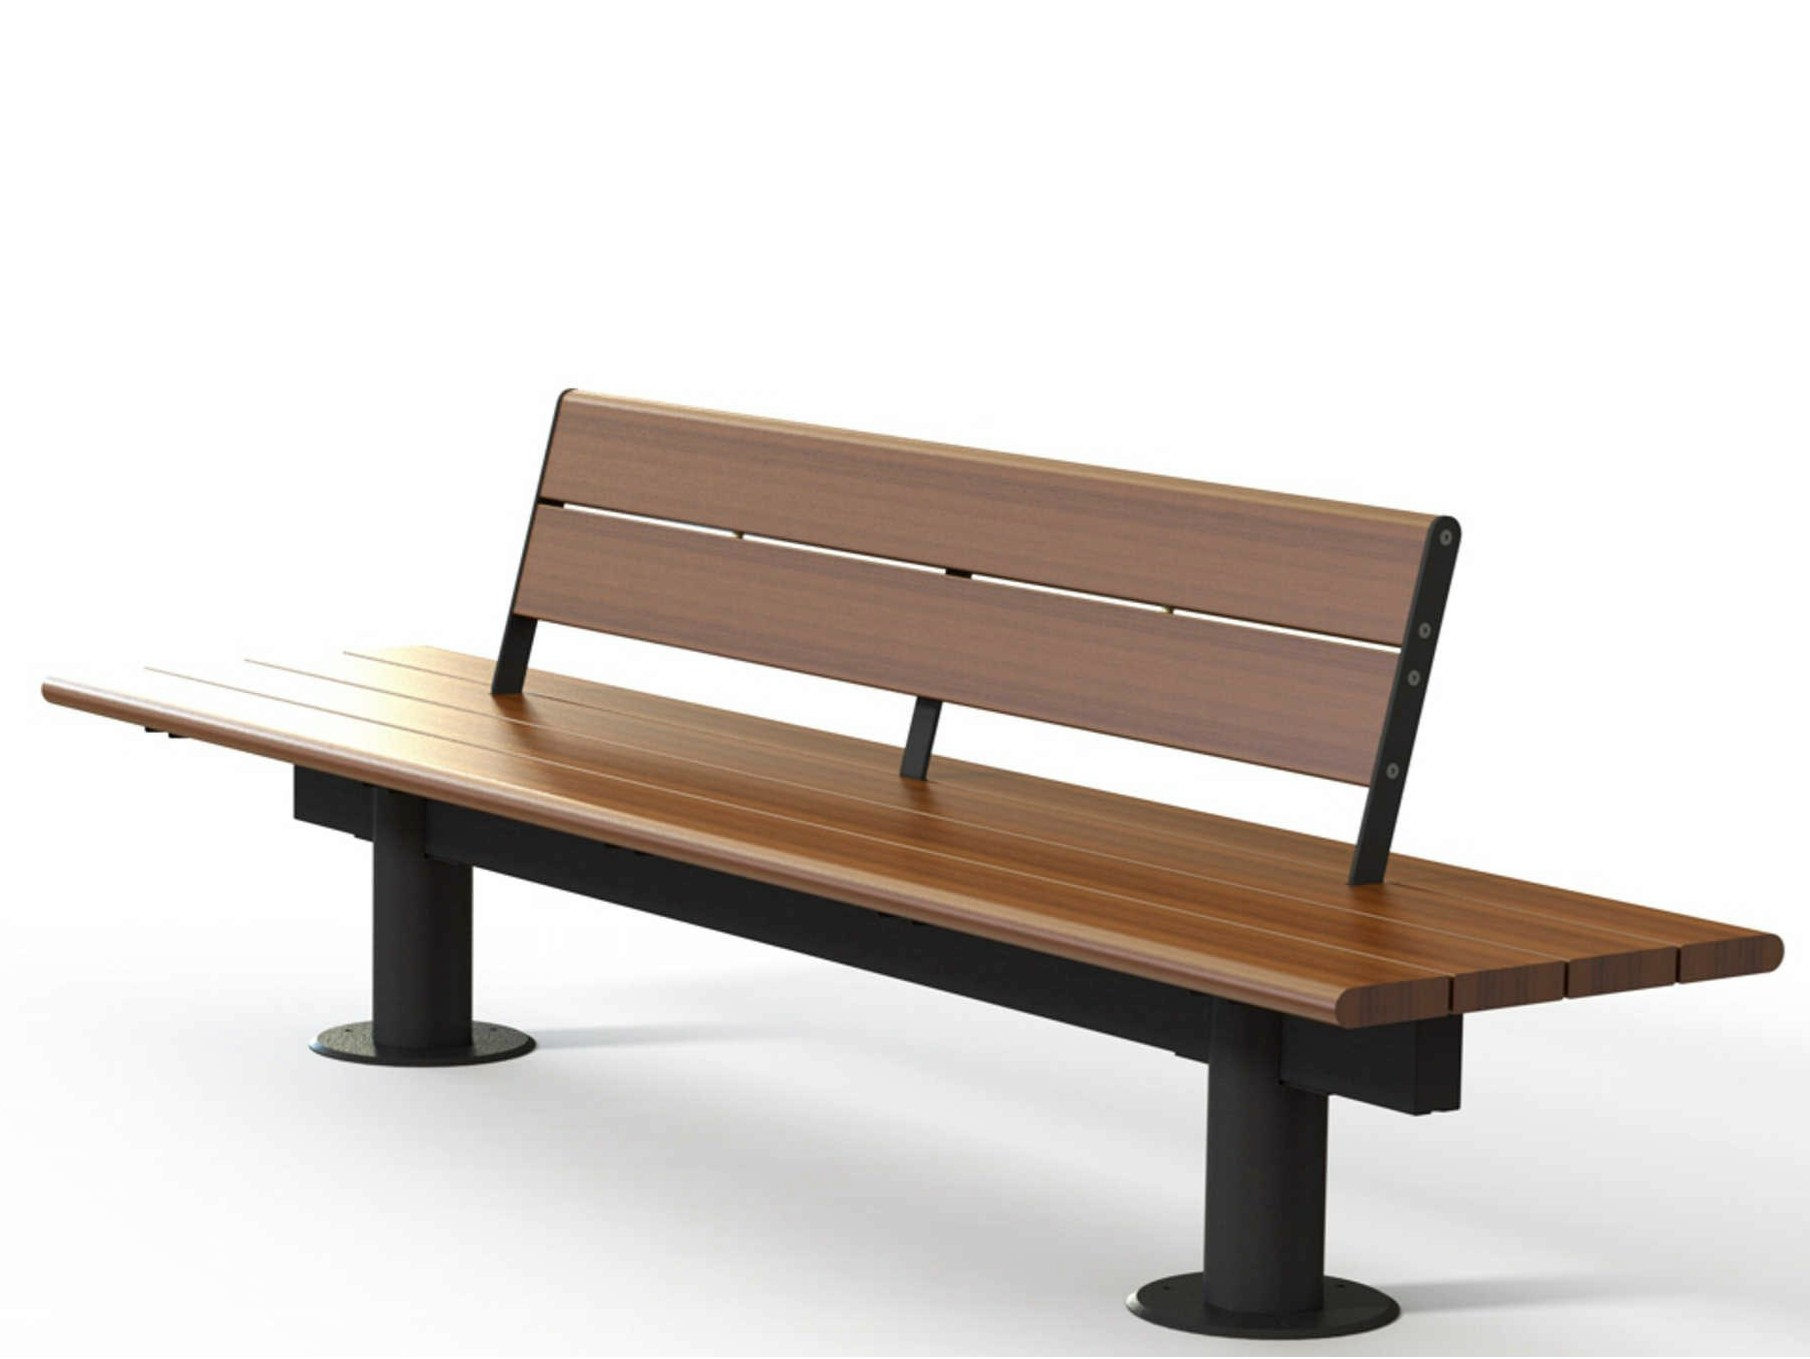 Banc en bois de style contemporain avec dossier valencia by metalco design metalco department - Banc contemporain ...